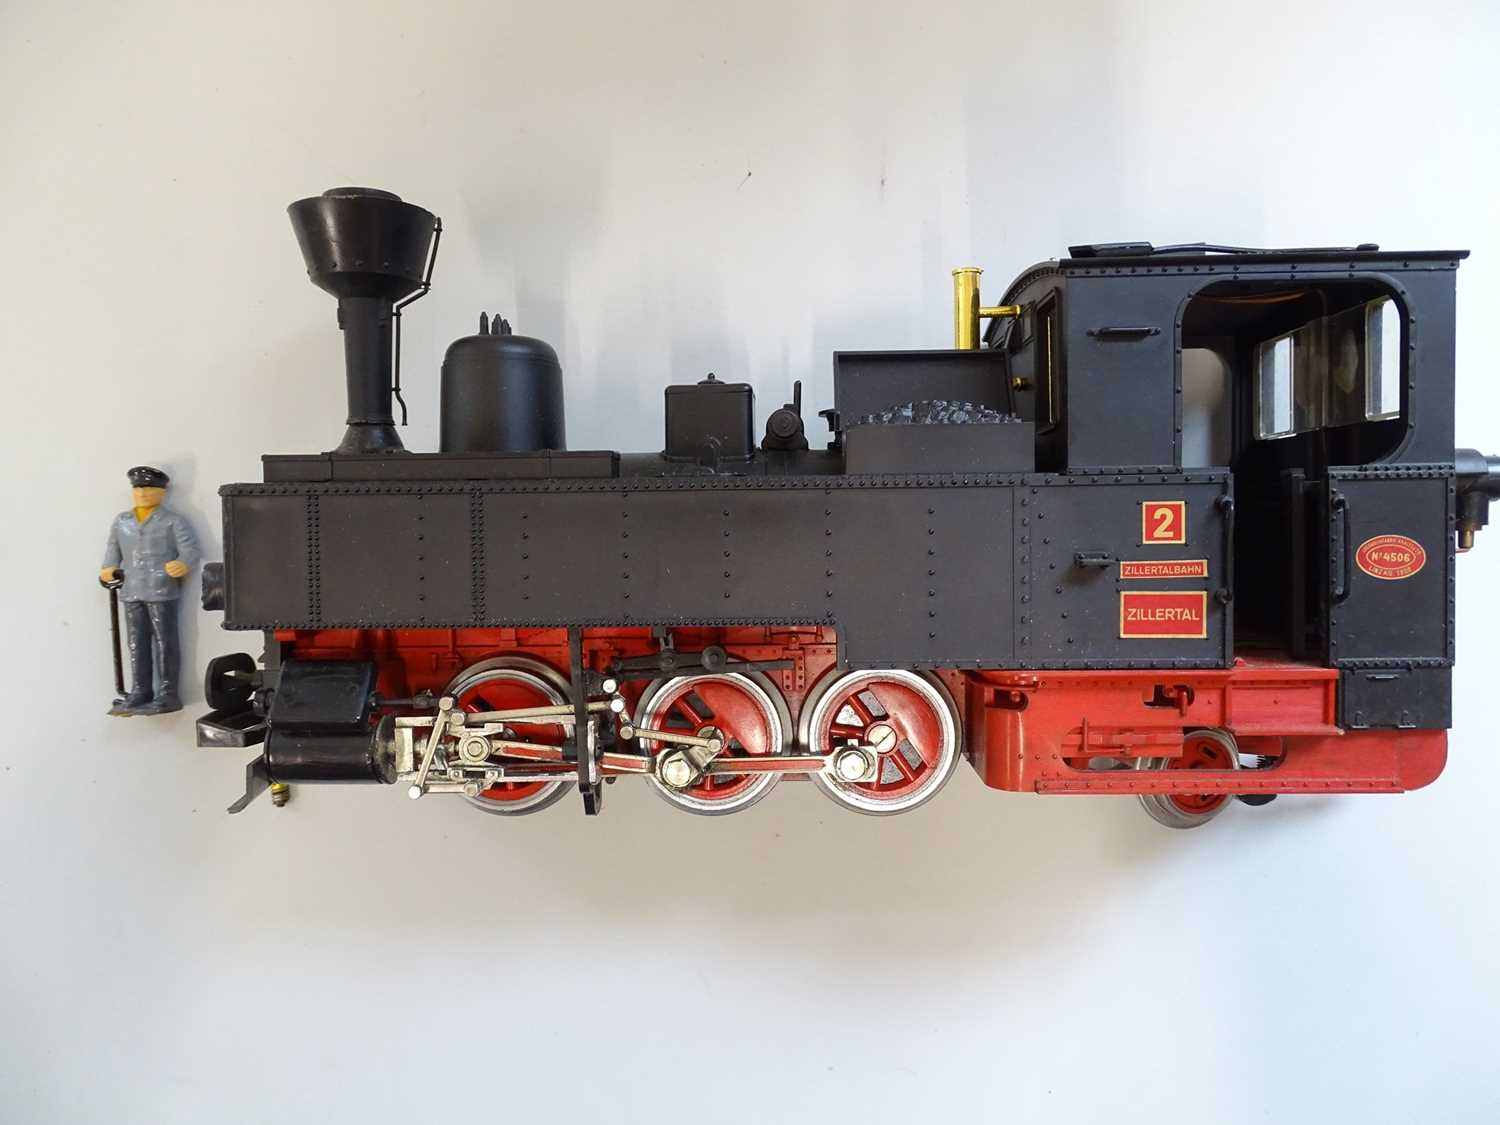 An LGB G Scale 2071D 0-6-2 steam tank locomotive in Zillertalbahn black livery numbered 2 - VG in